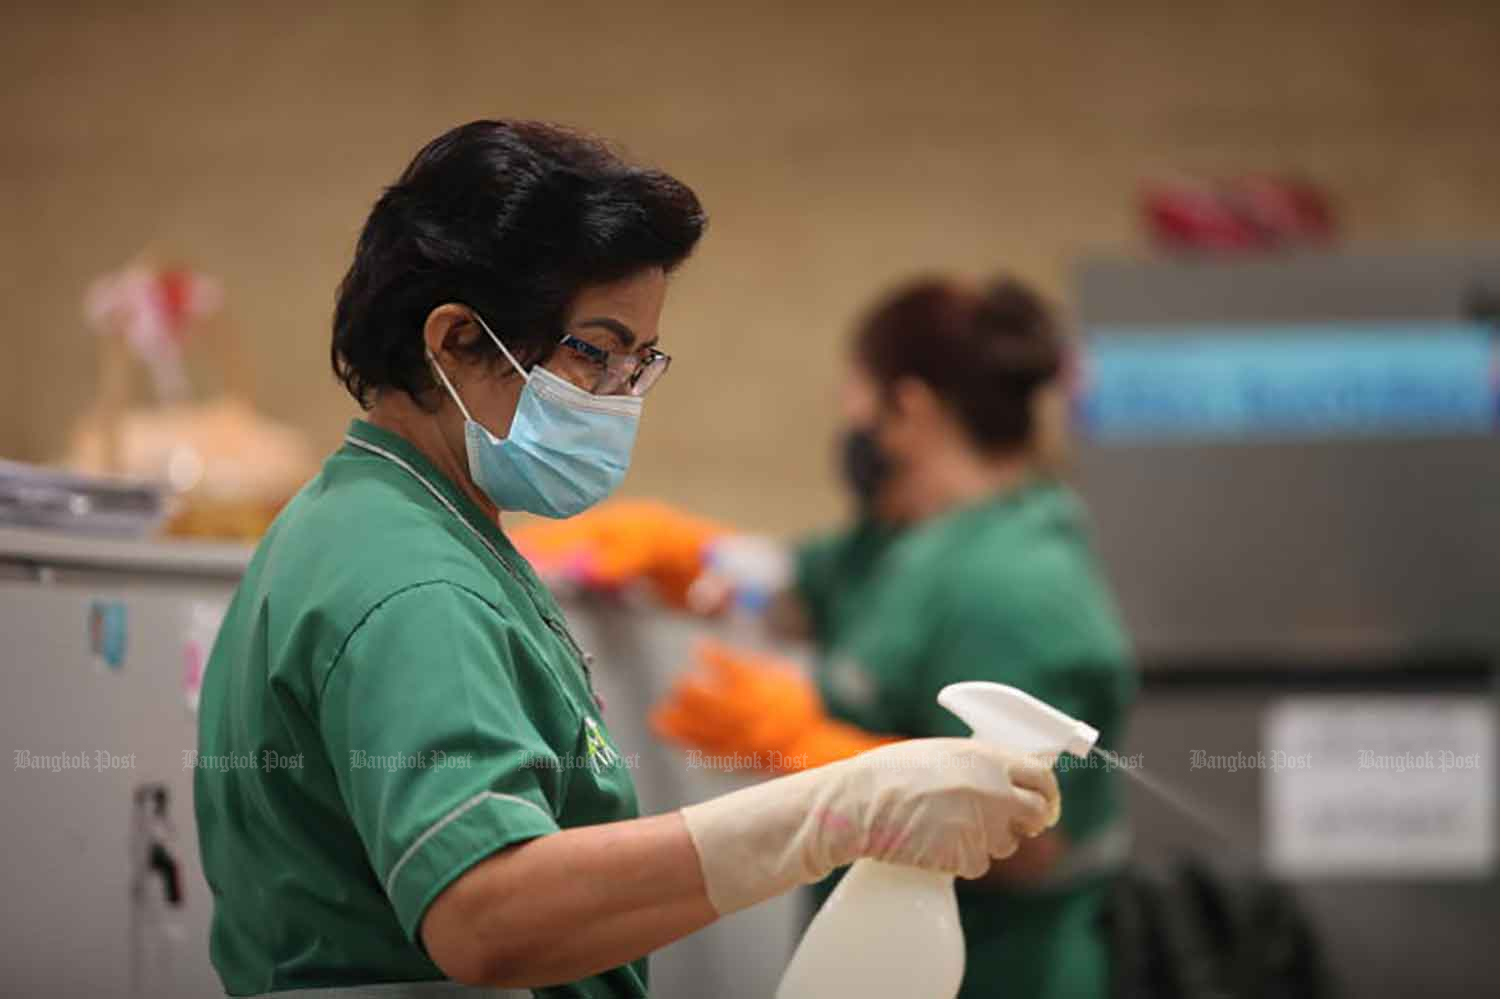 Workers disinfect the media room at the parliament complex in Bangkok on Friday, when the country posted a new high of 2,070 Covid-19 cases in one day, together with four deaths. (Photo: Apichart Jinakul)